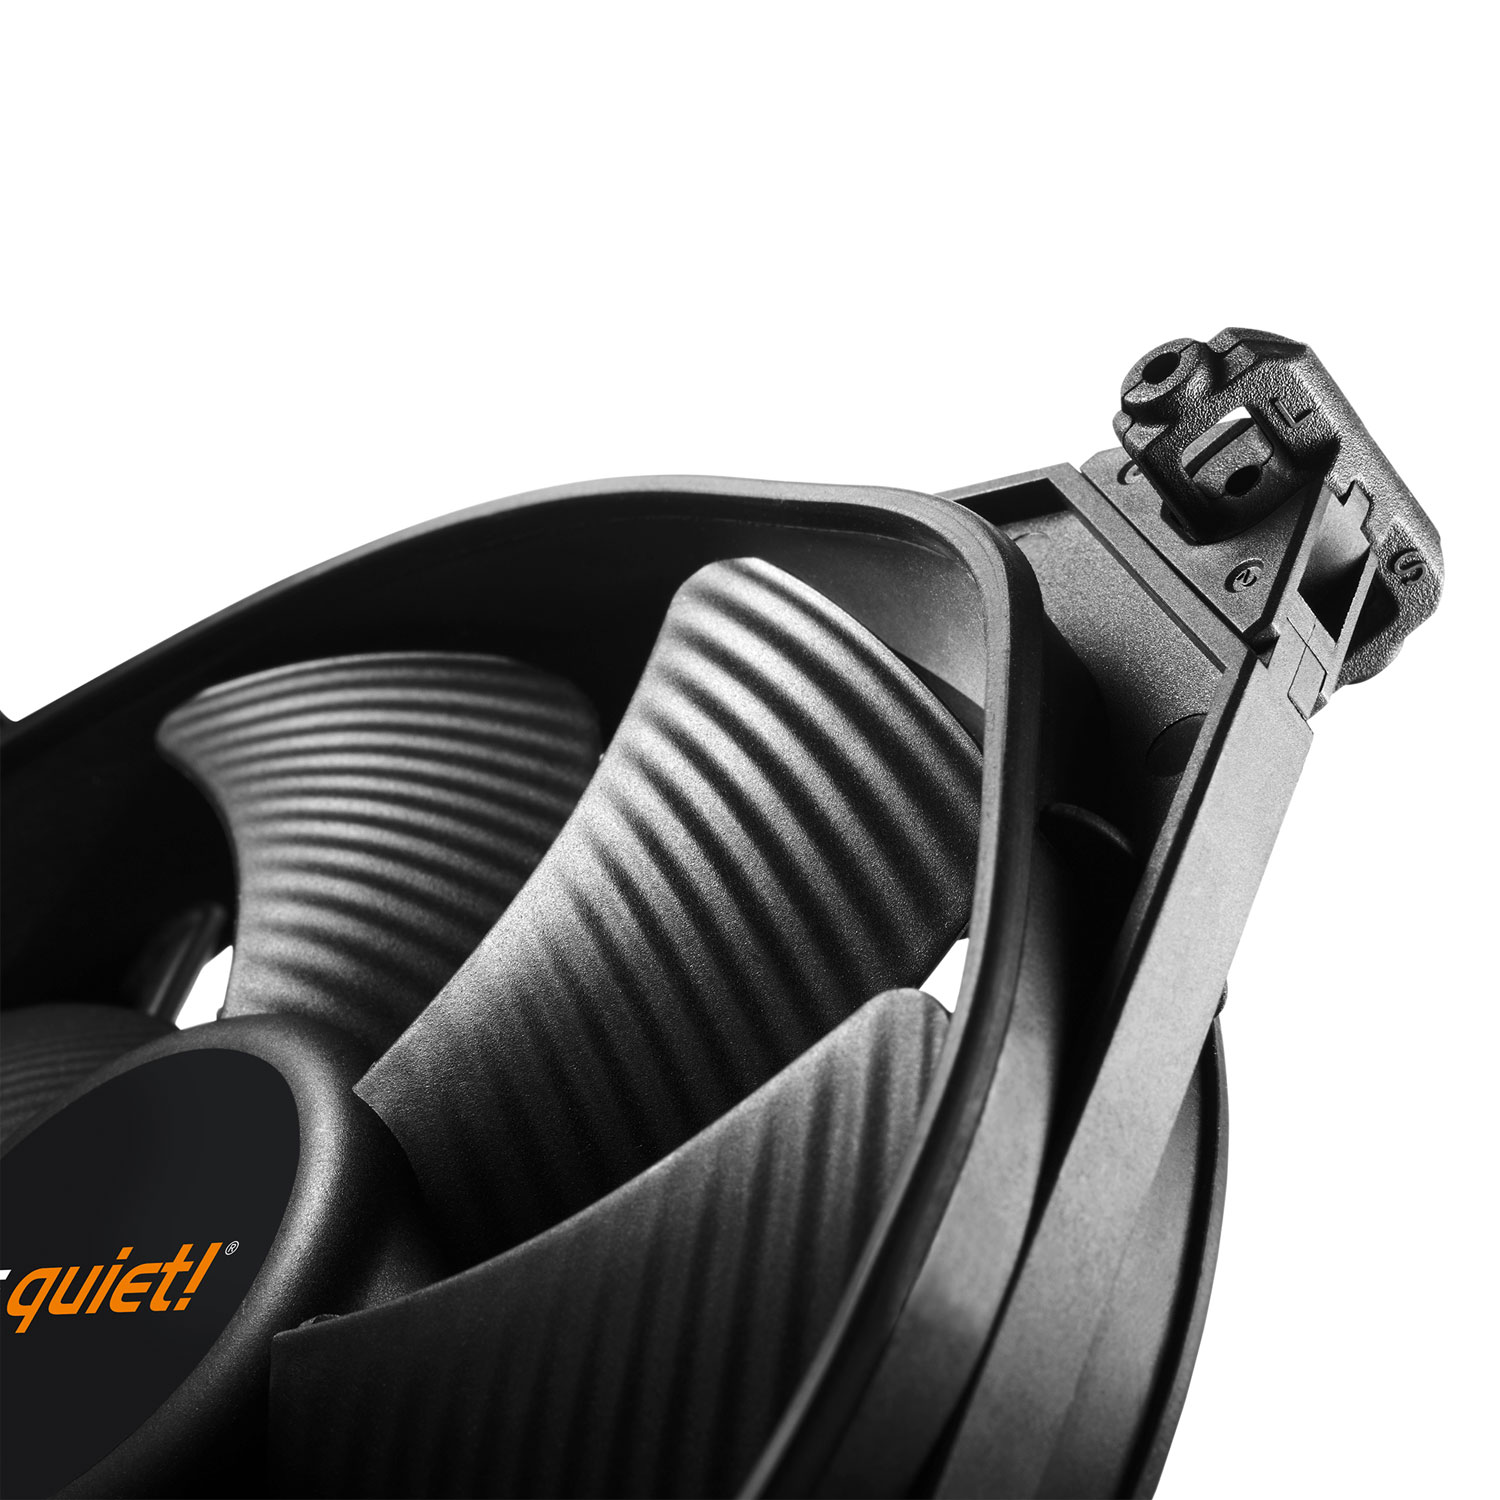 be quiet silent wings 3 140mm pwm high speed. Black Bedroom Furniture Sets. Home Design Ideas